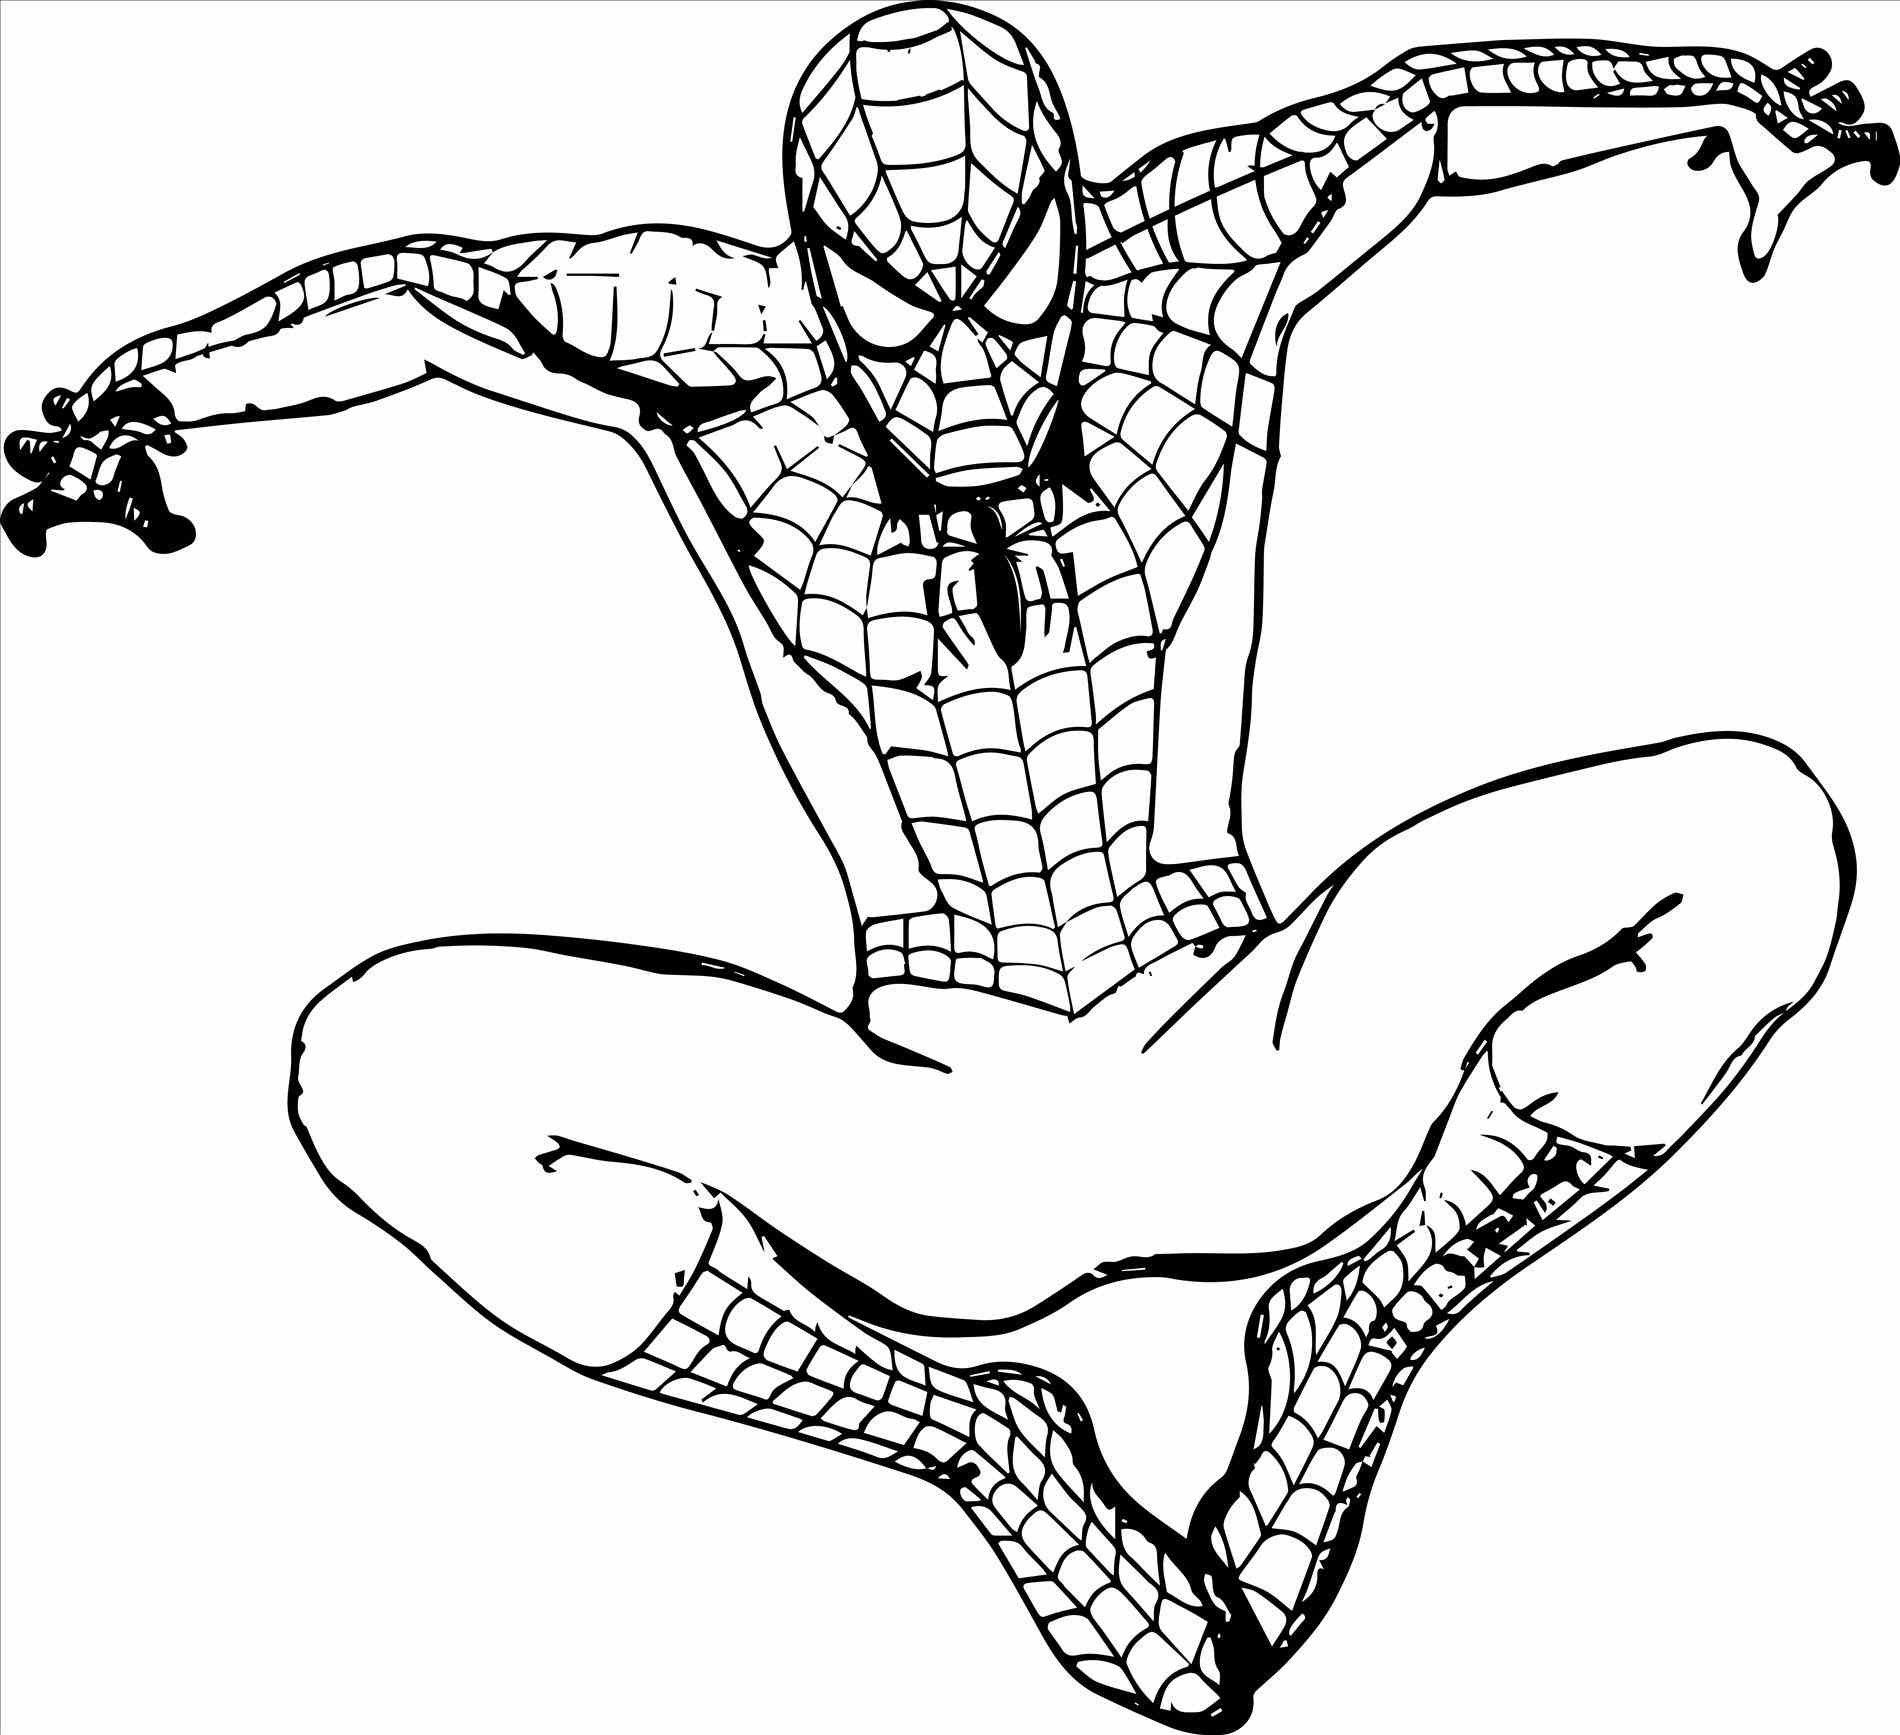 Easy Spiderman Pictures To Draw Free Printable Spiderman Coloring Pages Heathermarxgallery Superhero Coloring Pages Spiderman Coloring Superhero Coloring